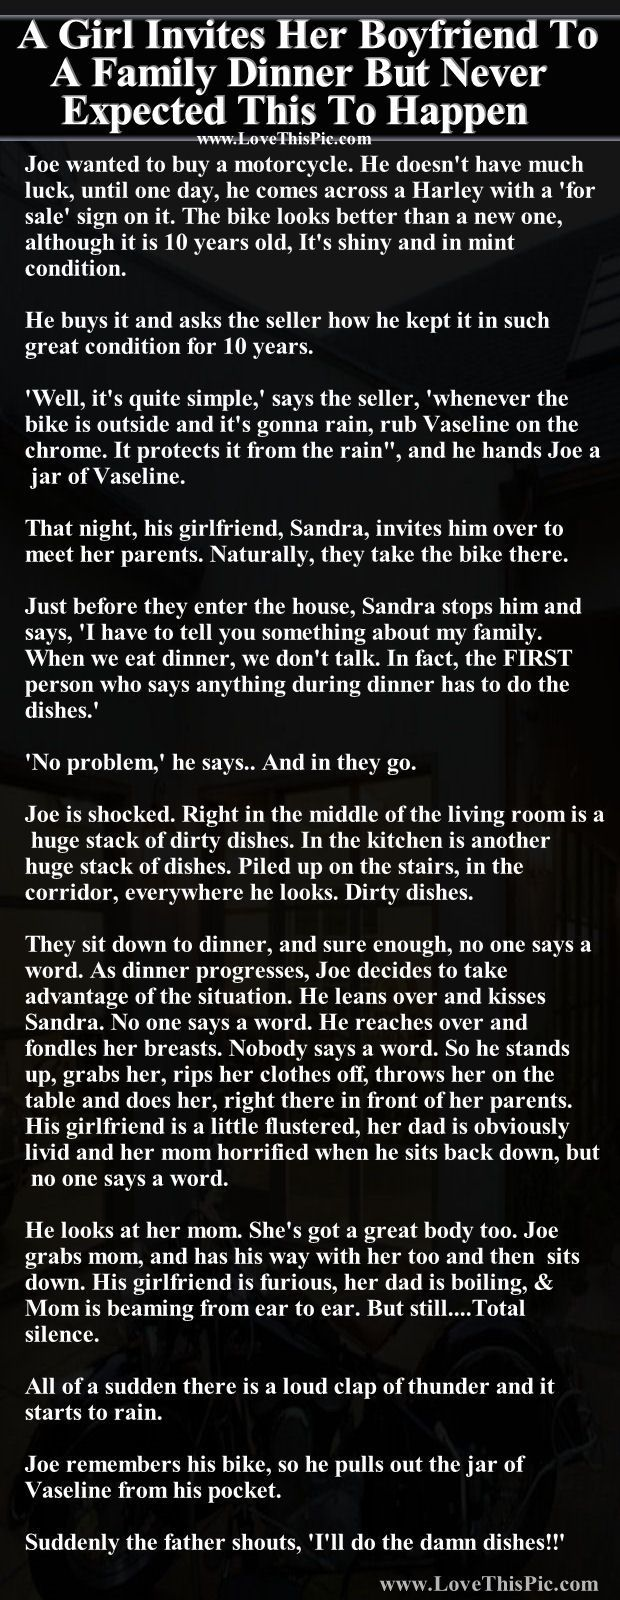 A Girl Invites Her Boyfriend To A Family Dinner But Never Expected This To Happen funny jokes story lol funny quote funny quotes funny sayings joke hilarious humor stories funny jokes relationship humor